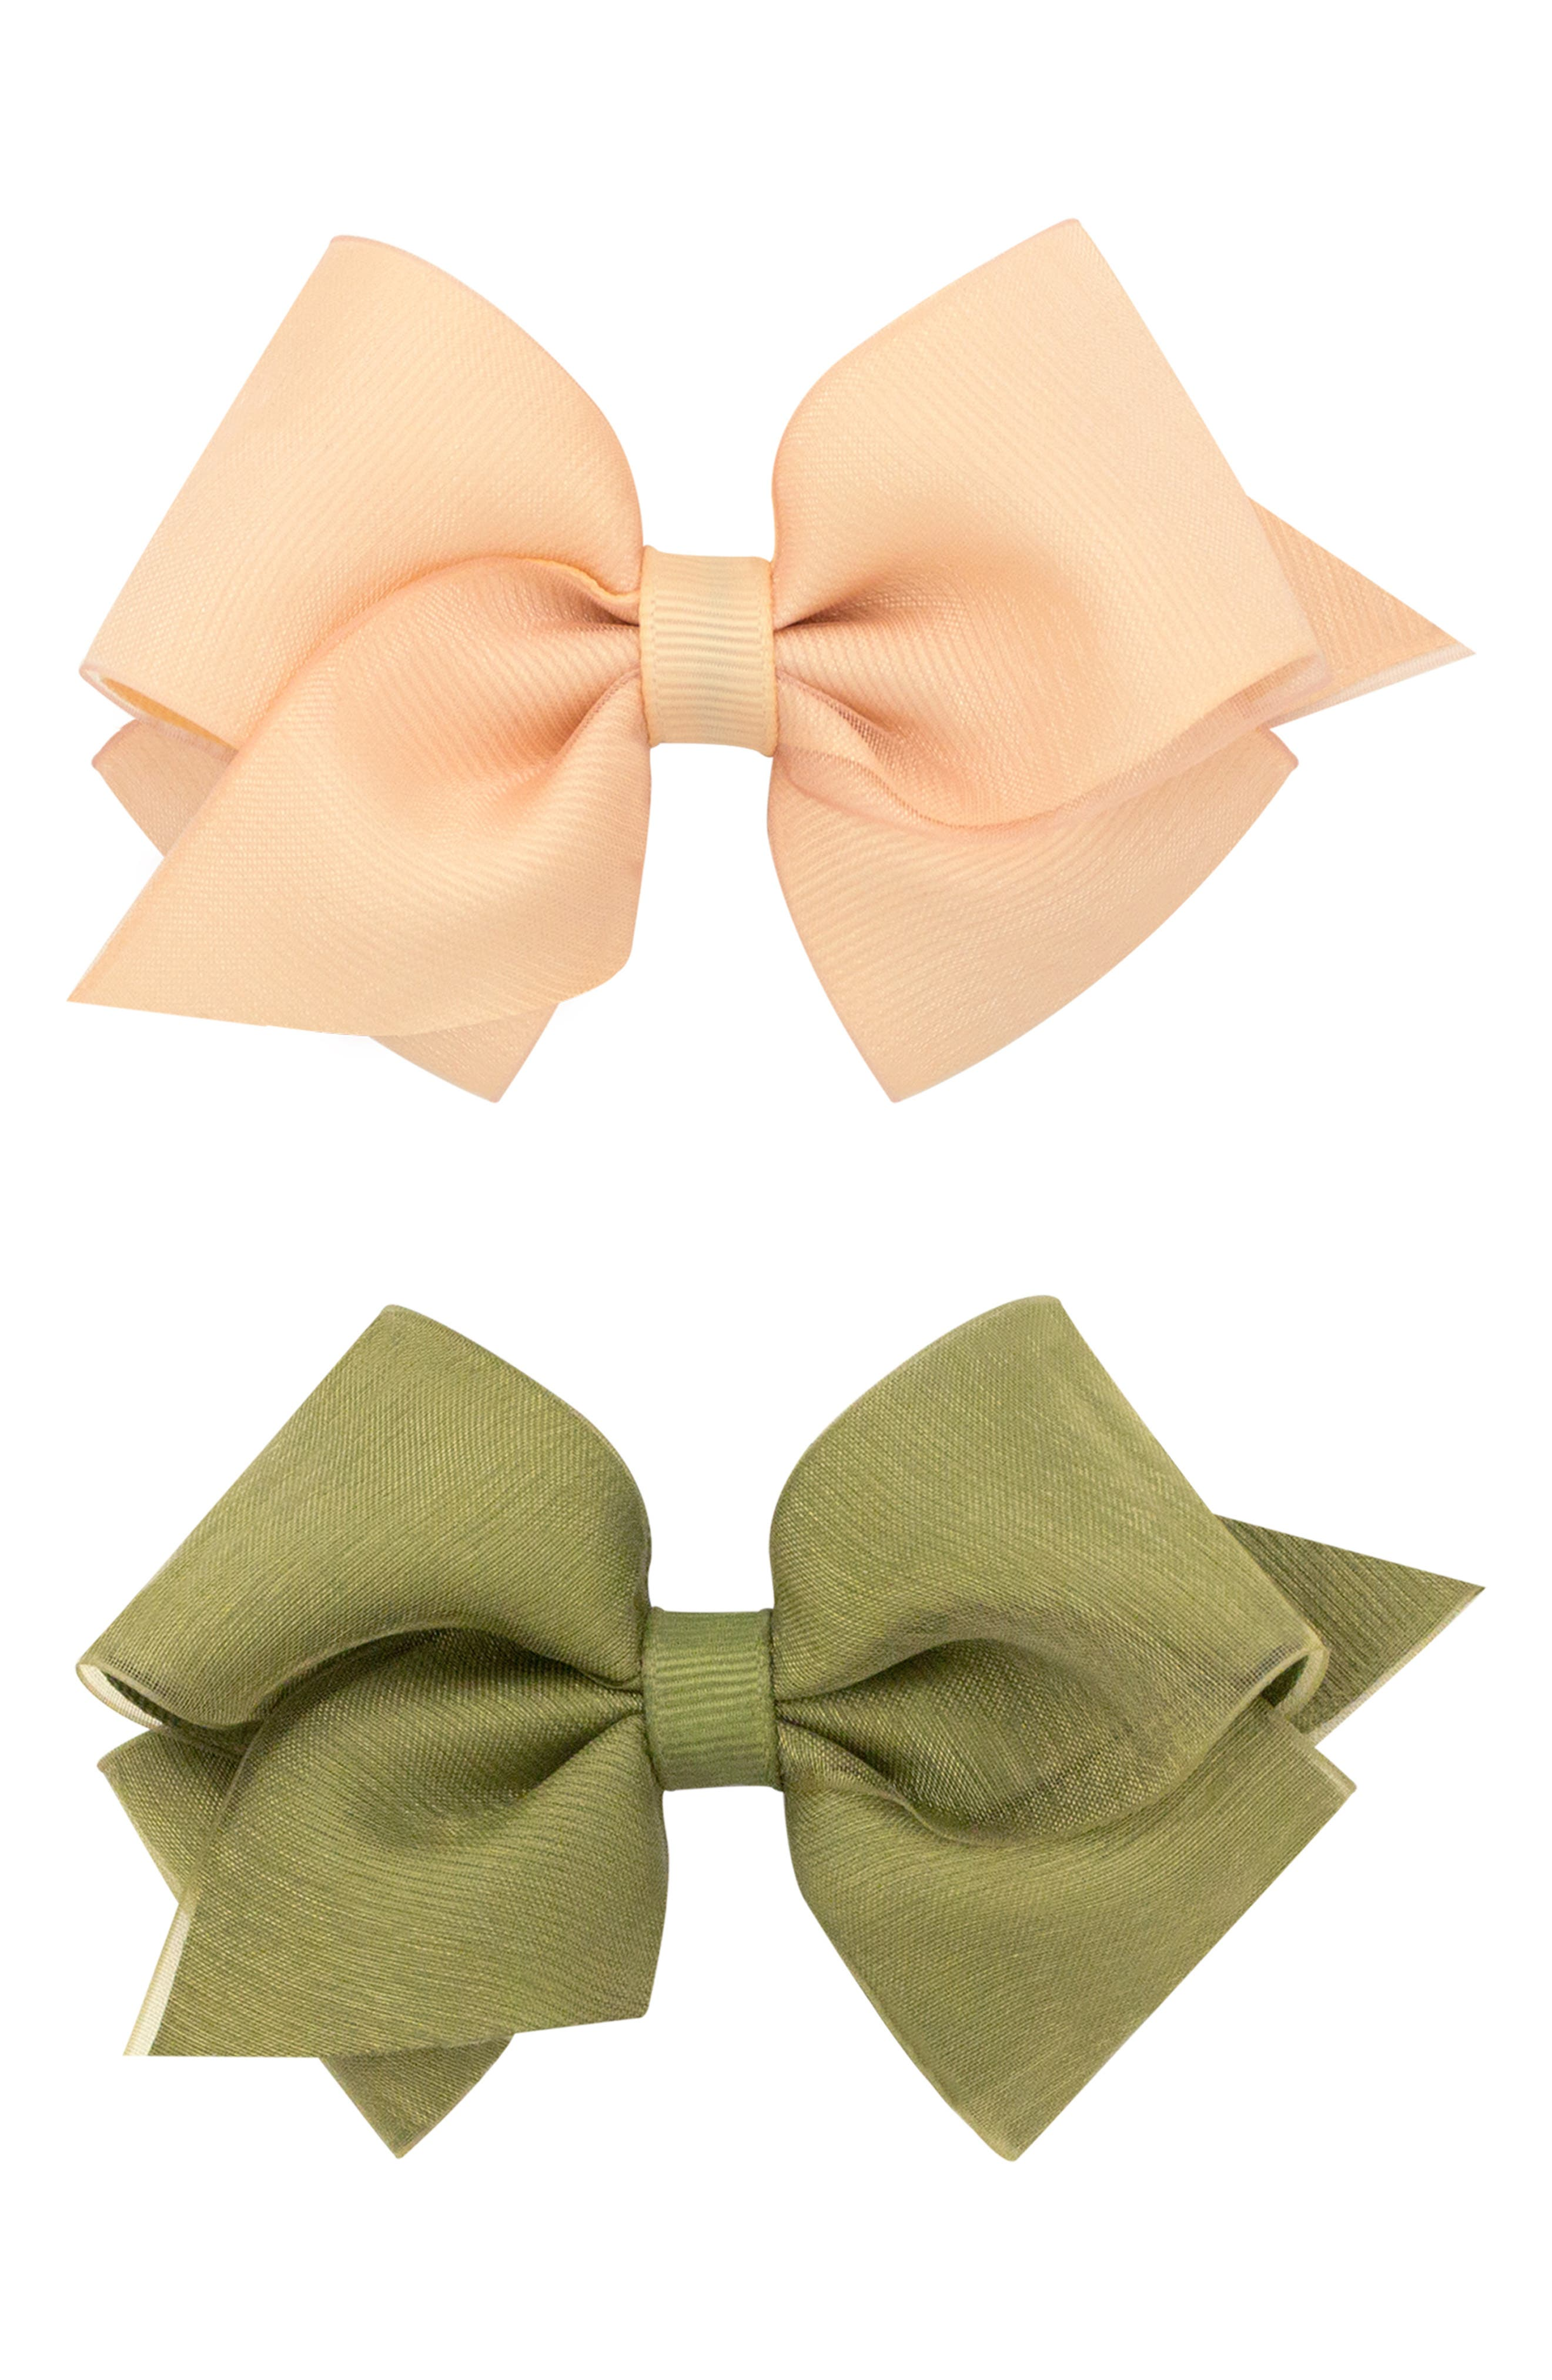 2-Pack Organza Bow Hair Clips,                             Alternate thumbnail 2, color,                             NUDE